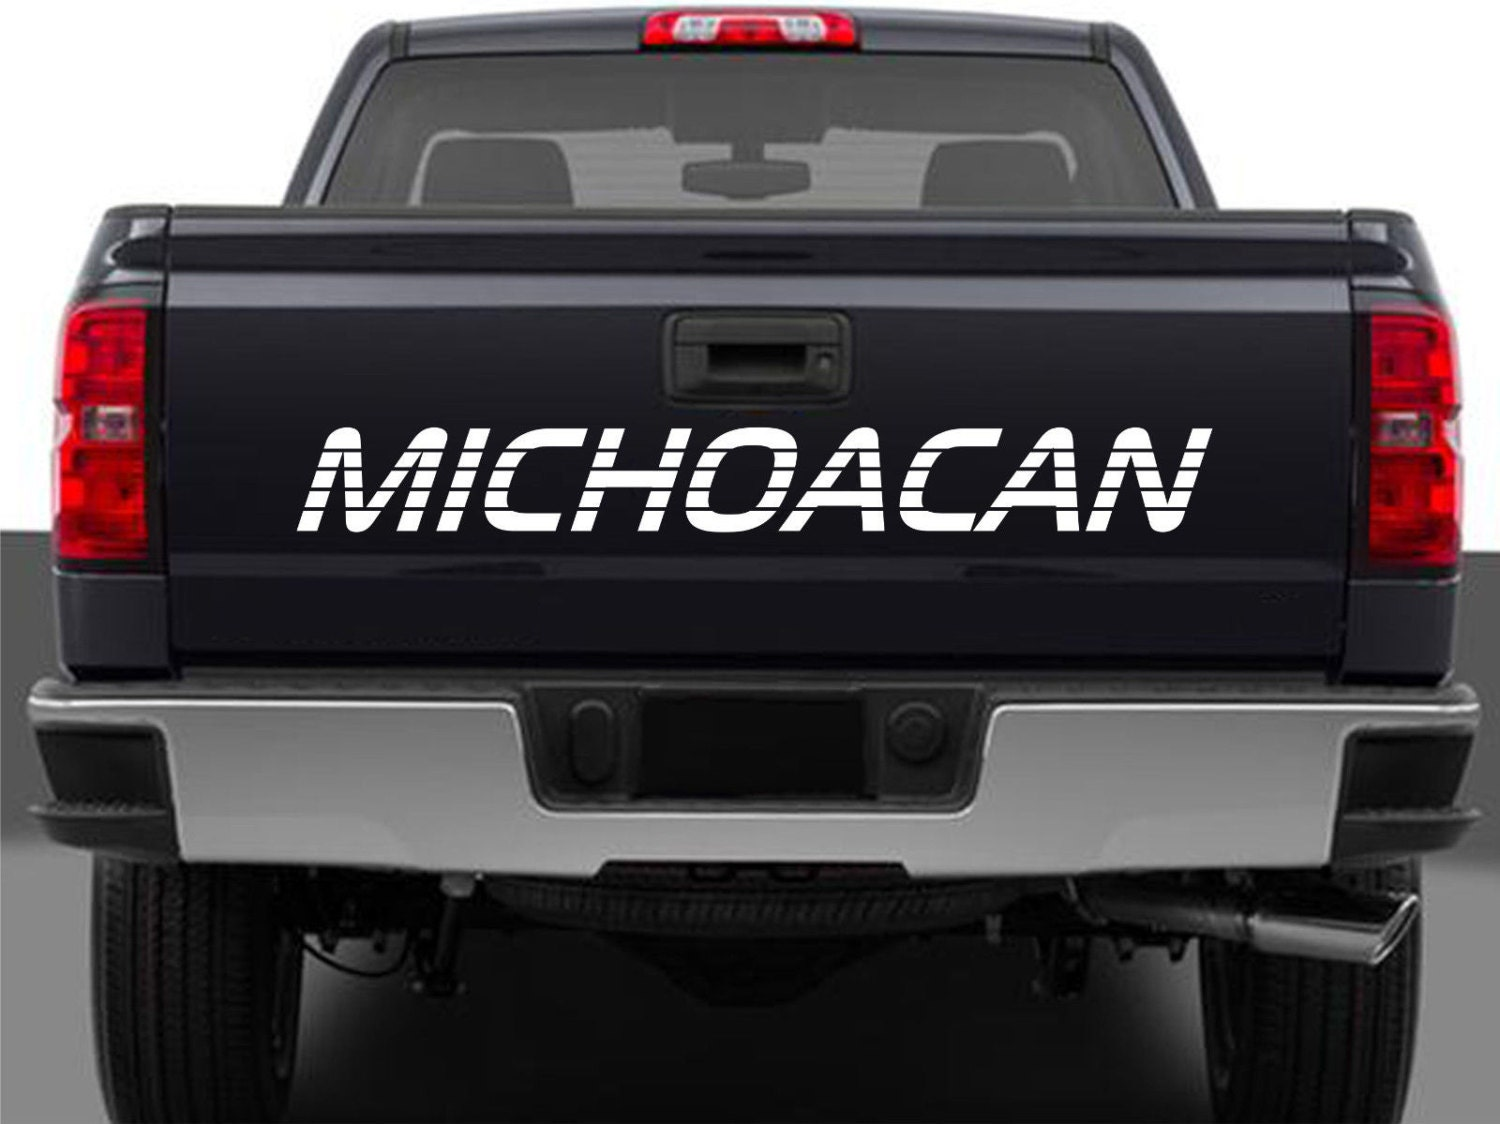 Michoacan Mexico Truck Decal Sticker Tailgate For Chevy - Chevy silverado sticker